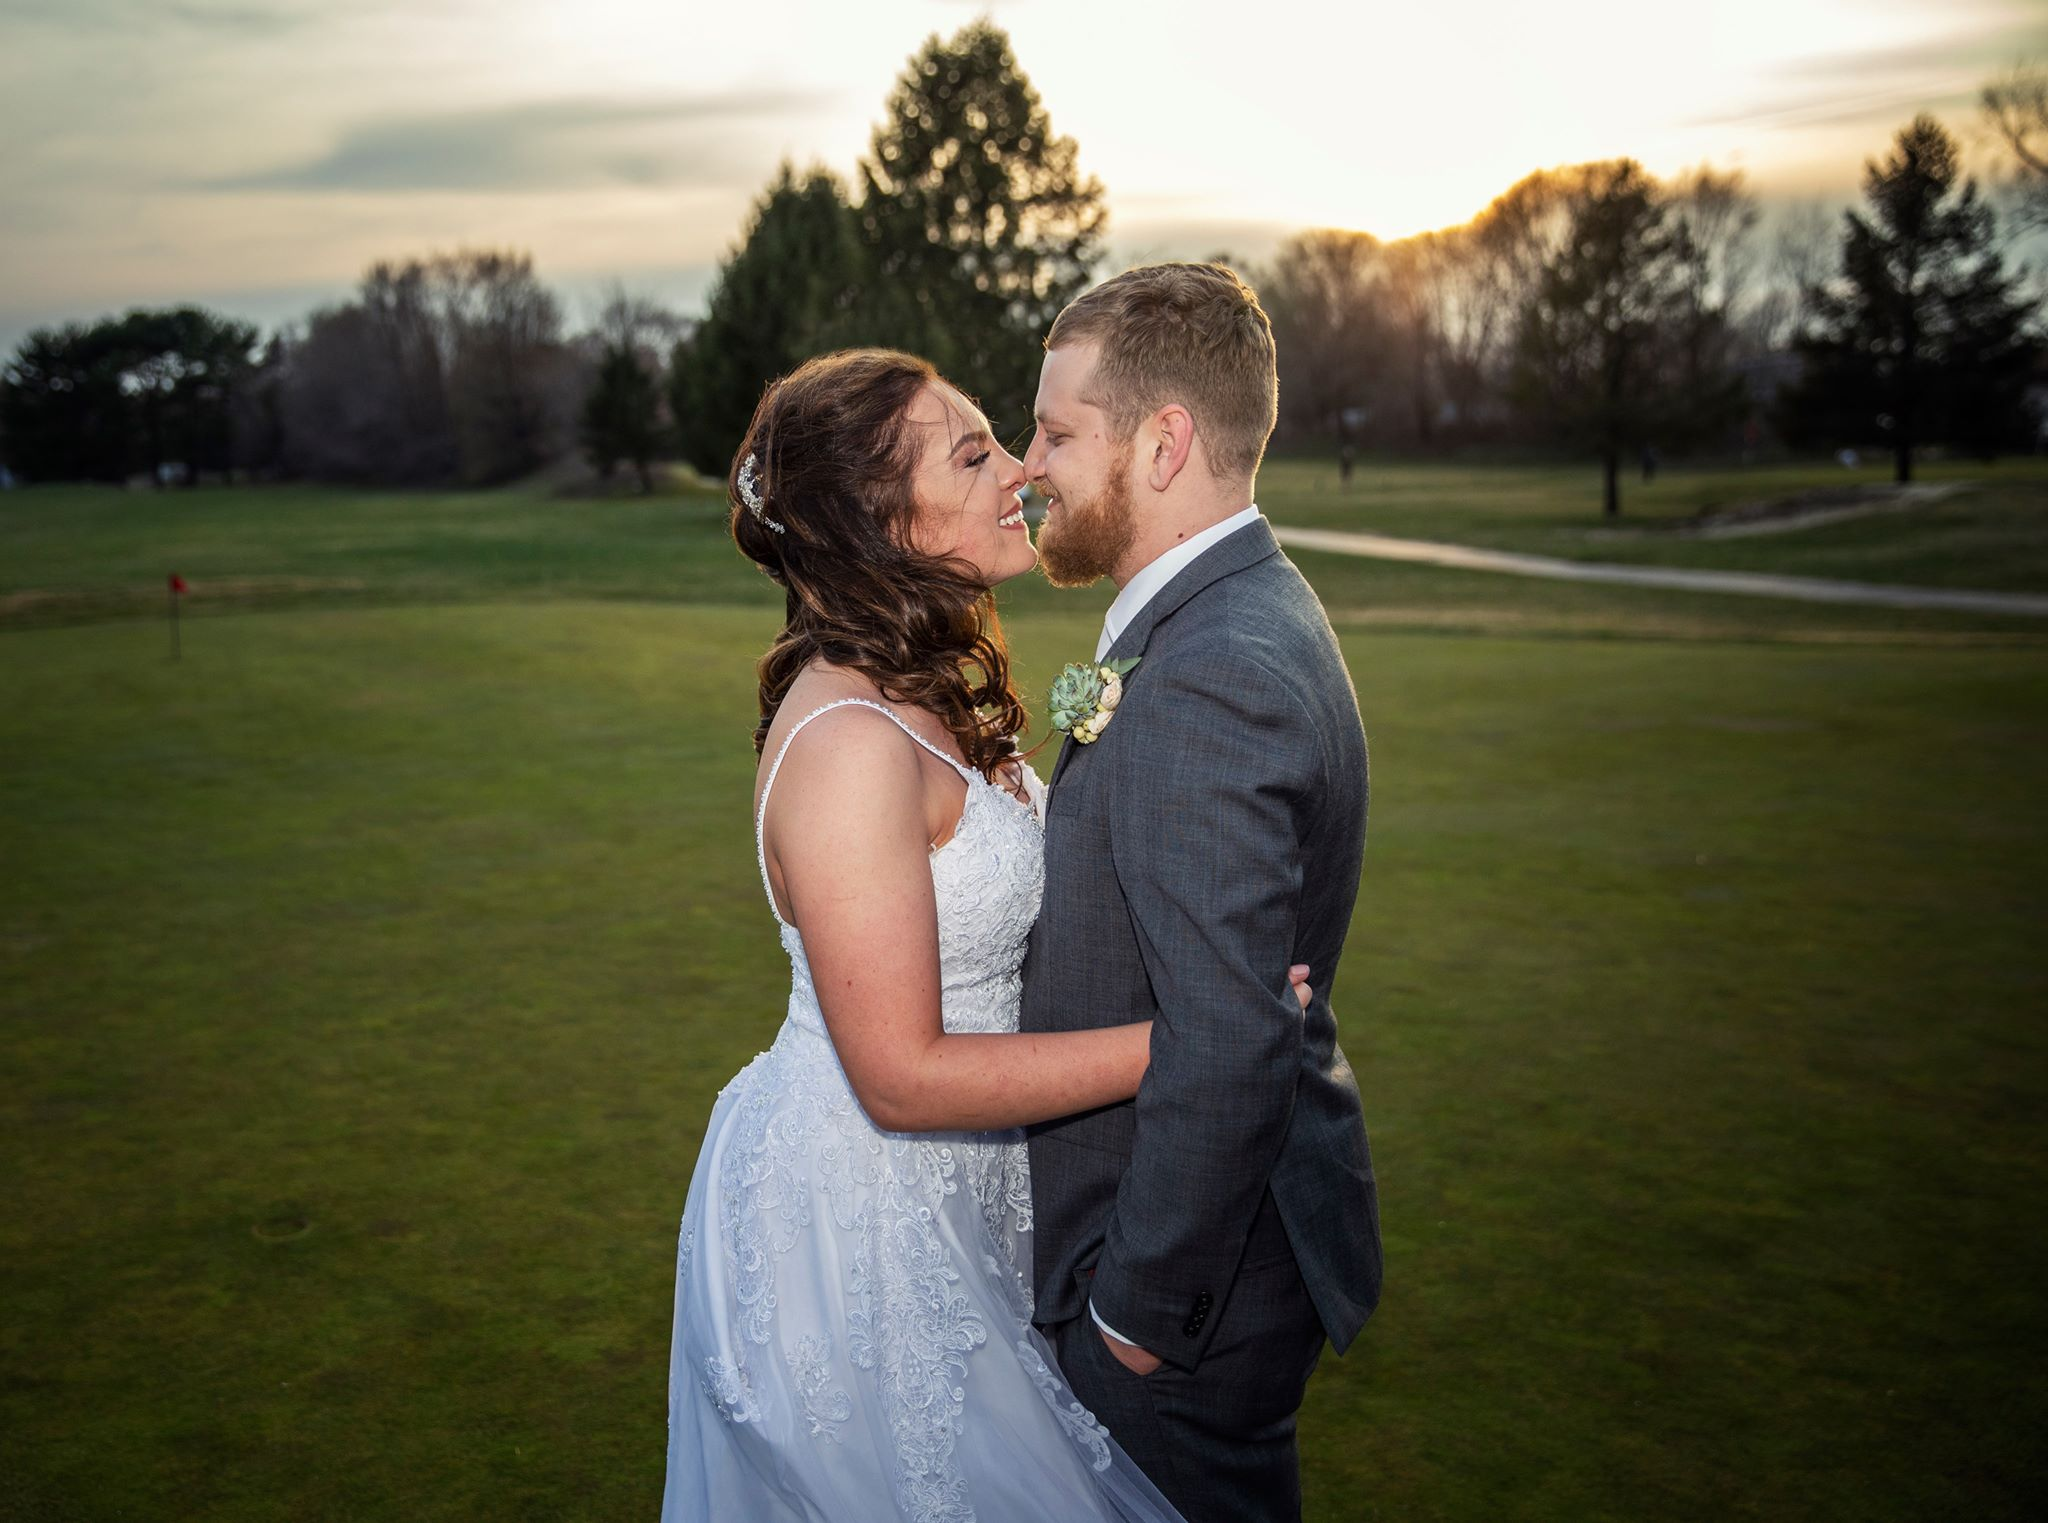 A romantic pose of a bride and a groom in New Jersey wedding